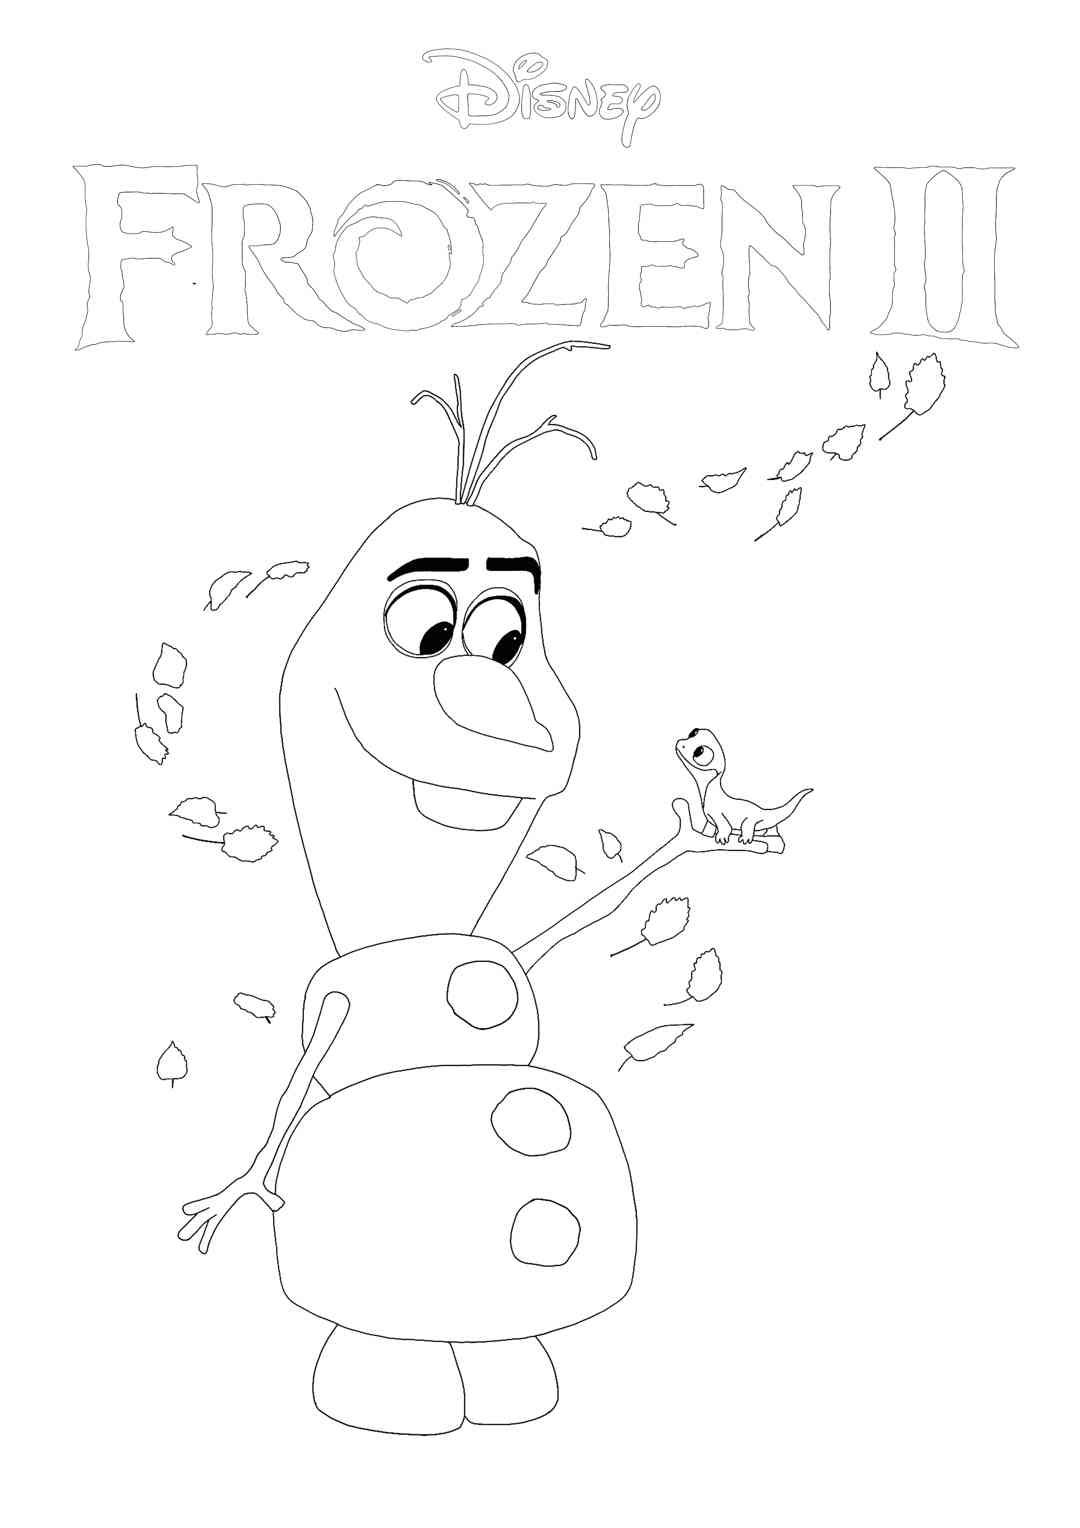 Frozen 2 Olaf And Bruni Coloring Page In 2020 Disney Coloring Sheets Frozen Coloring Pages Frozen Coloring